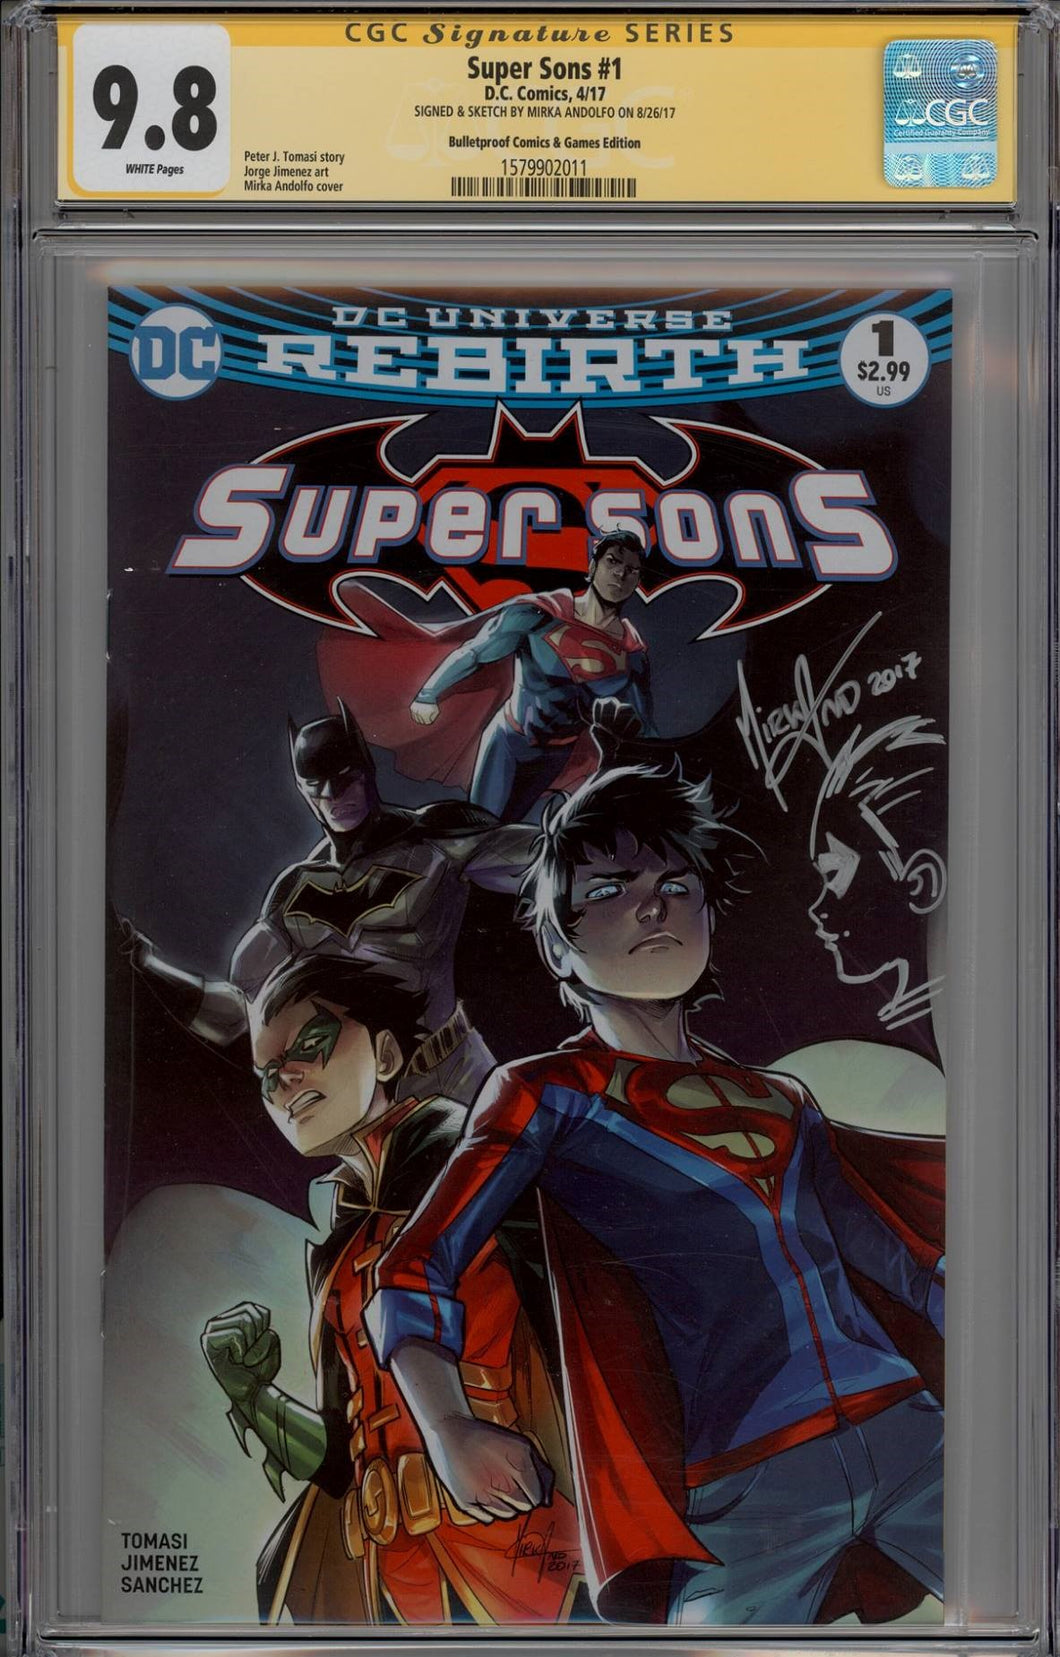 Super Sons #1 Mirka Andolfo Remark CGC 9.8 Signature Series